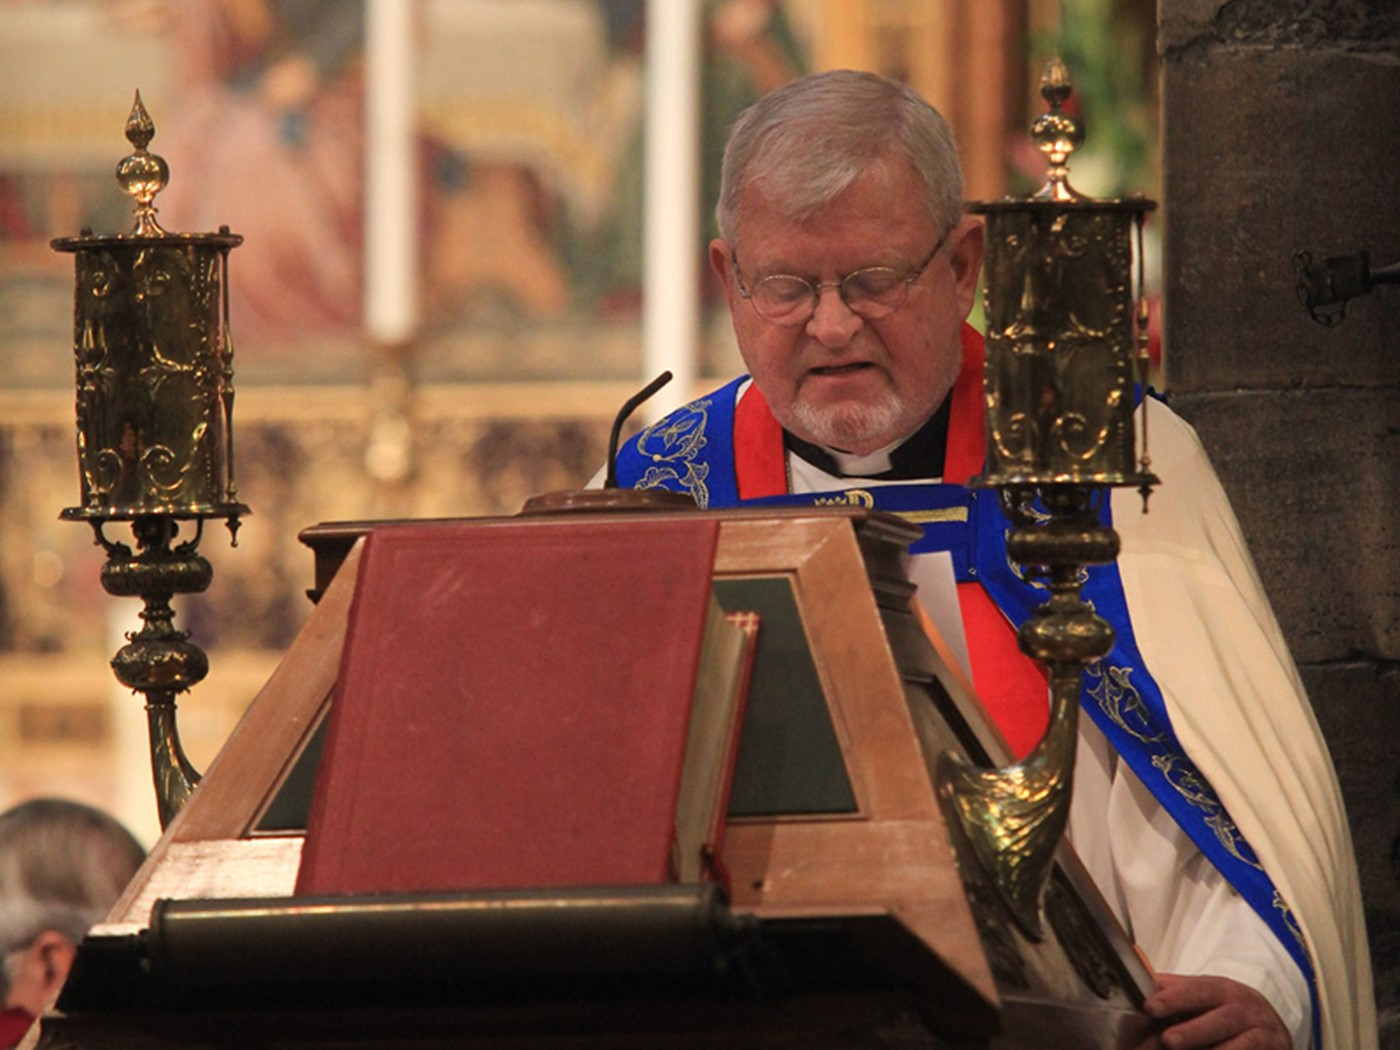 The Right Reverend Dr Martin Lind, Bishop, The Lutheran Church in Great Britain, reads Roman 1: 16-17, 3: 21-18